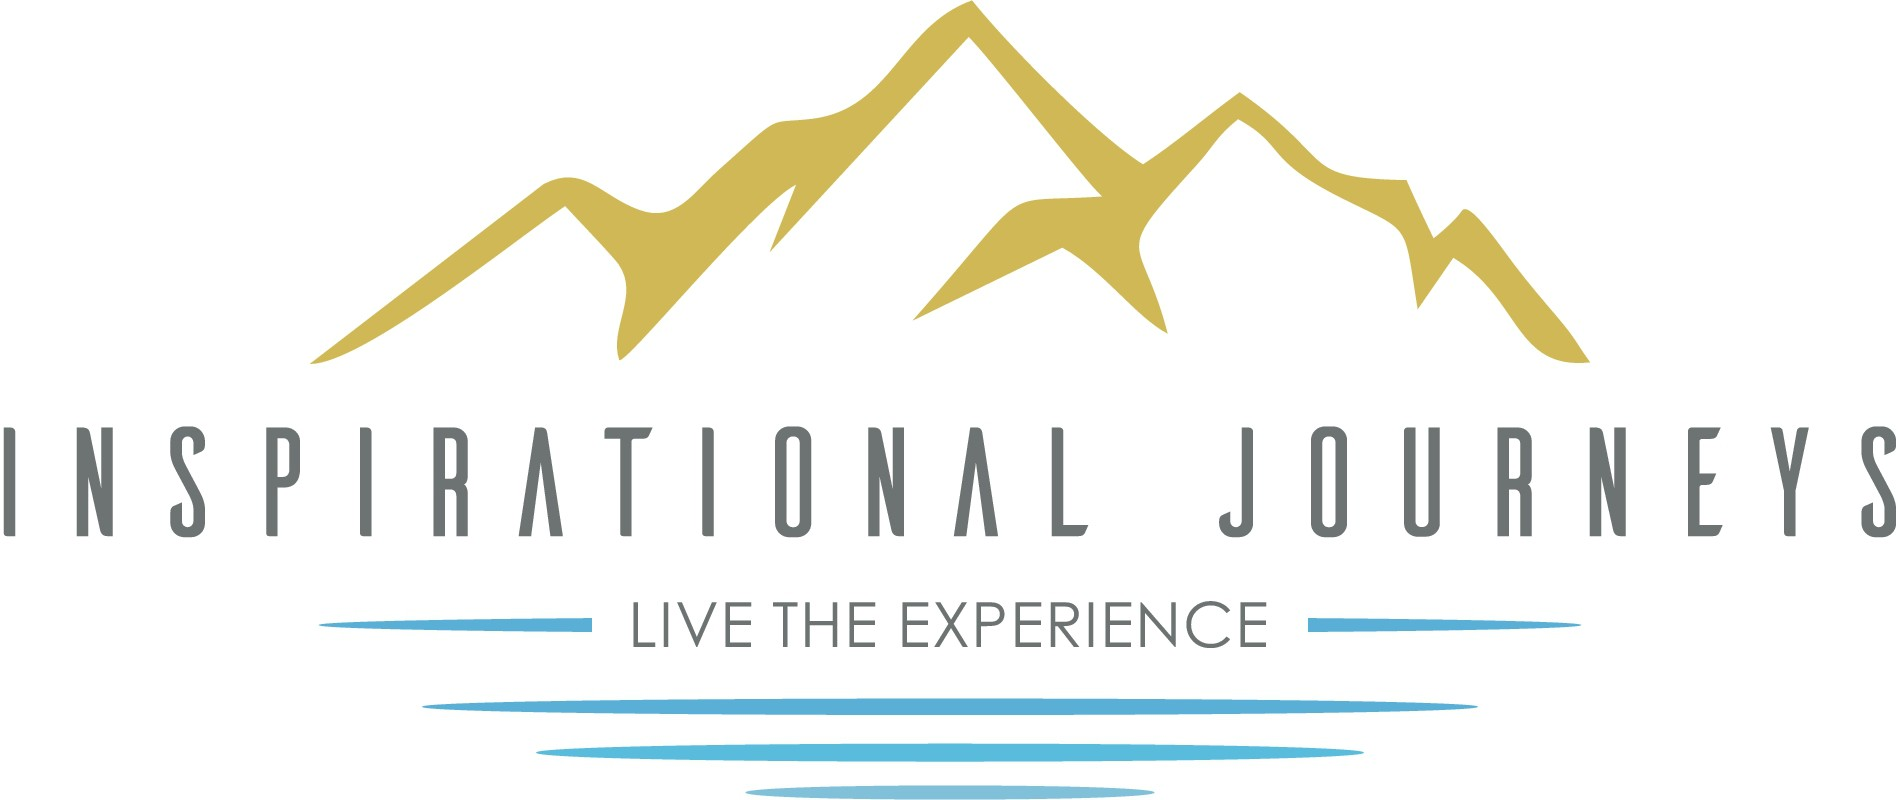 A Soulful- Wellness Travel Company iso a logo that captures our essence.